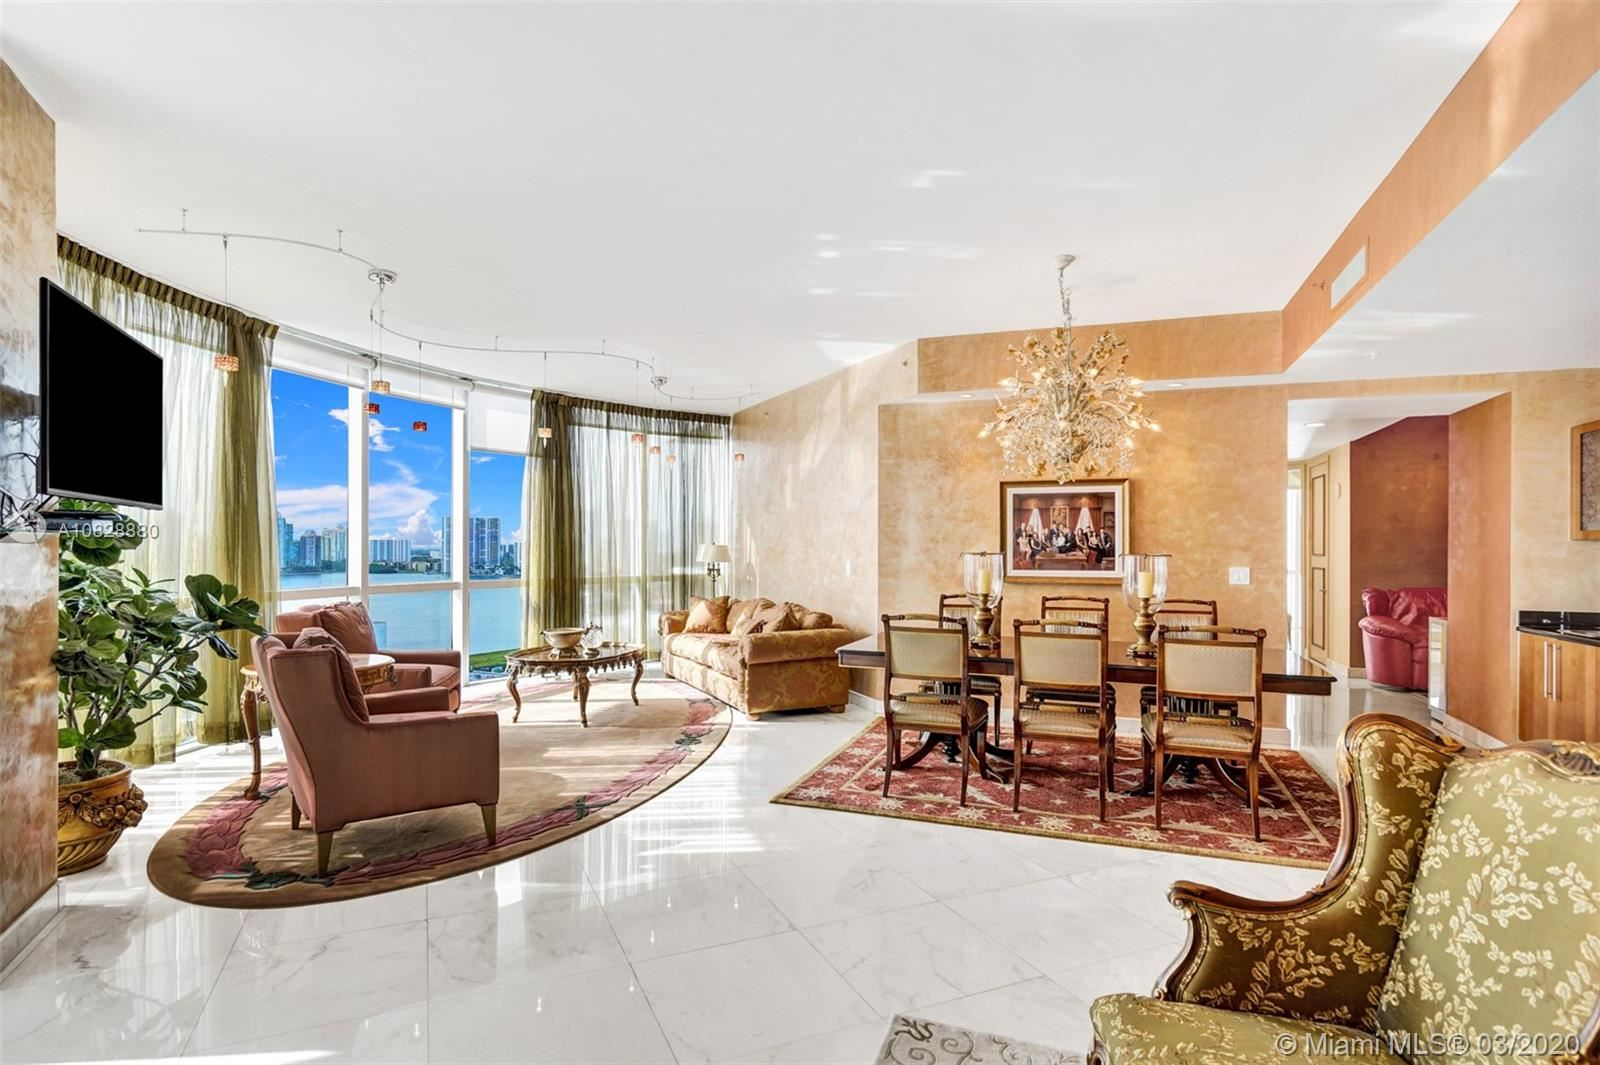 18101 Collins Ave #1601, Sunny Isles, FL 33160 - #: A10828880